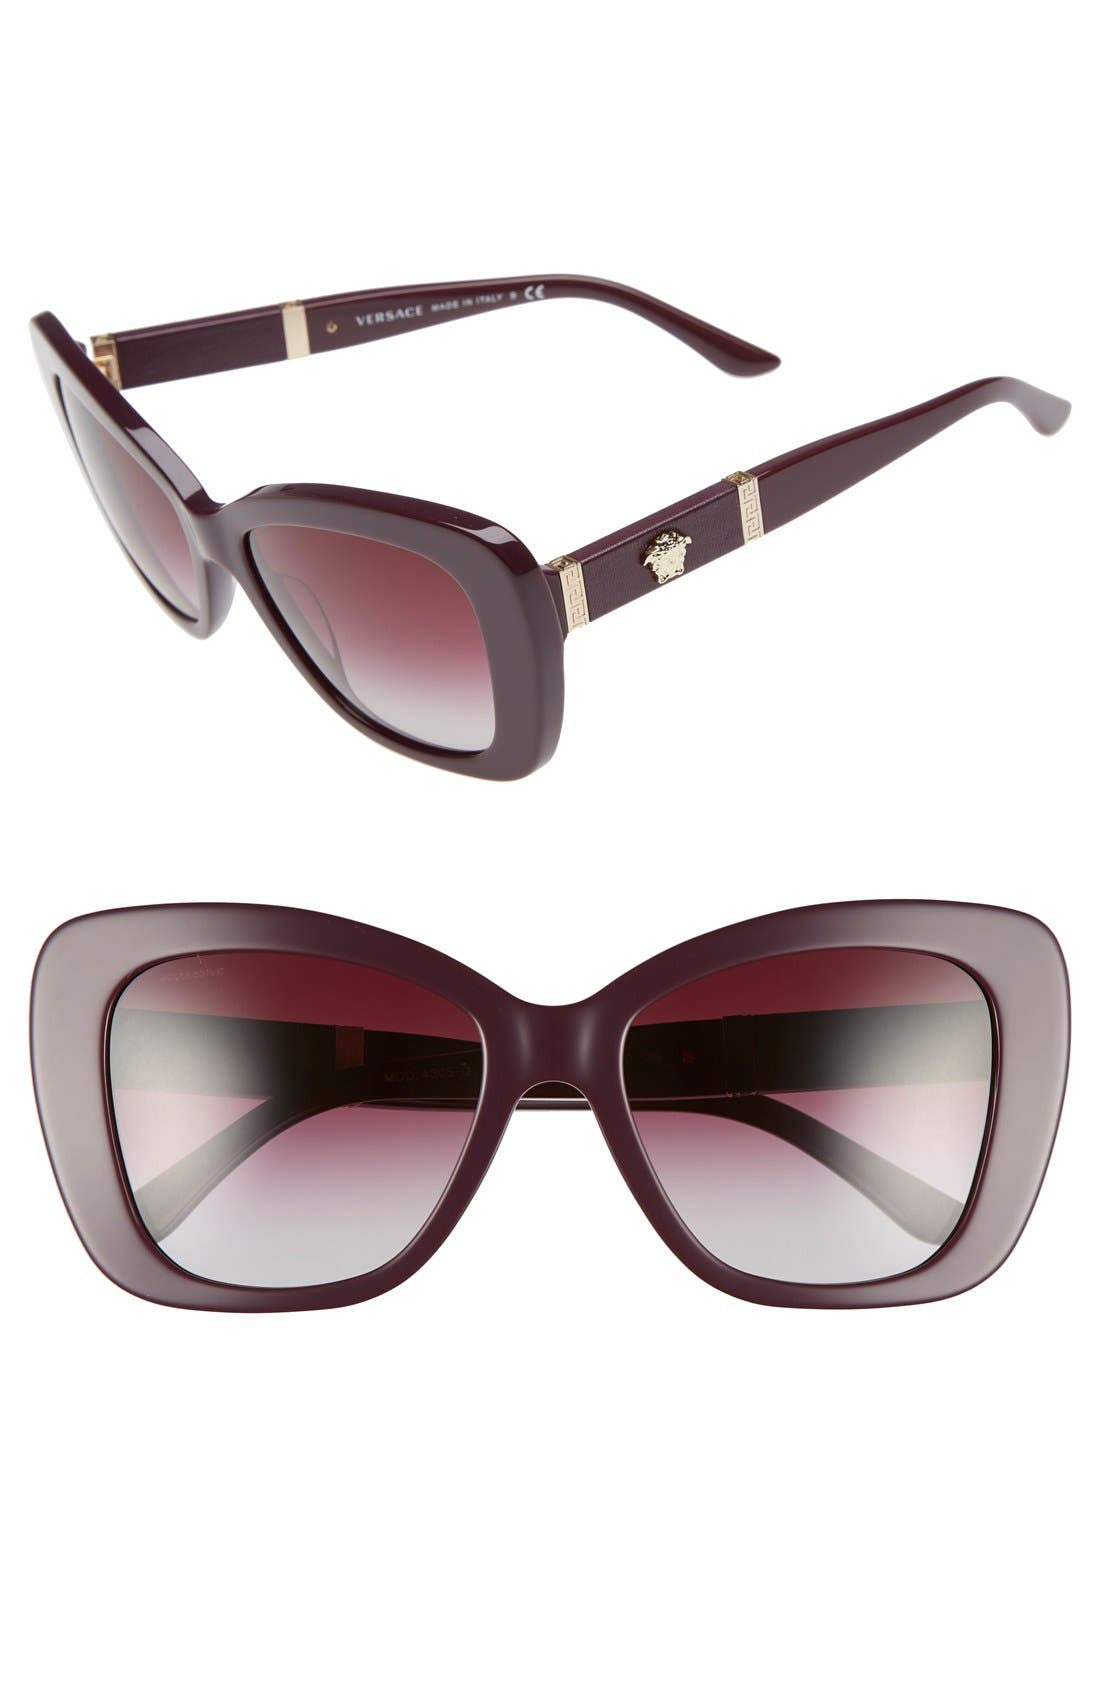 Main Image - Versace 54mm Retro Sunglasses